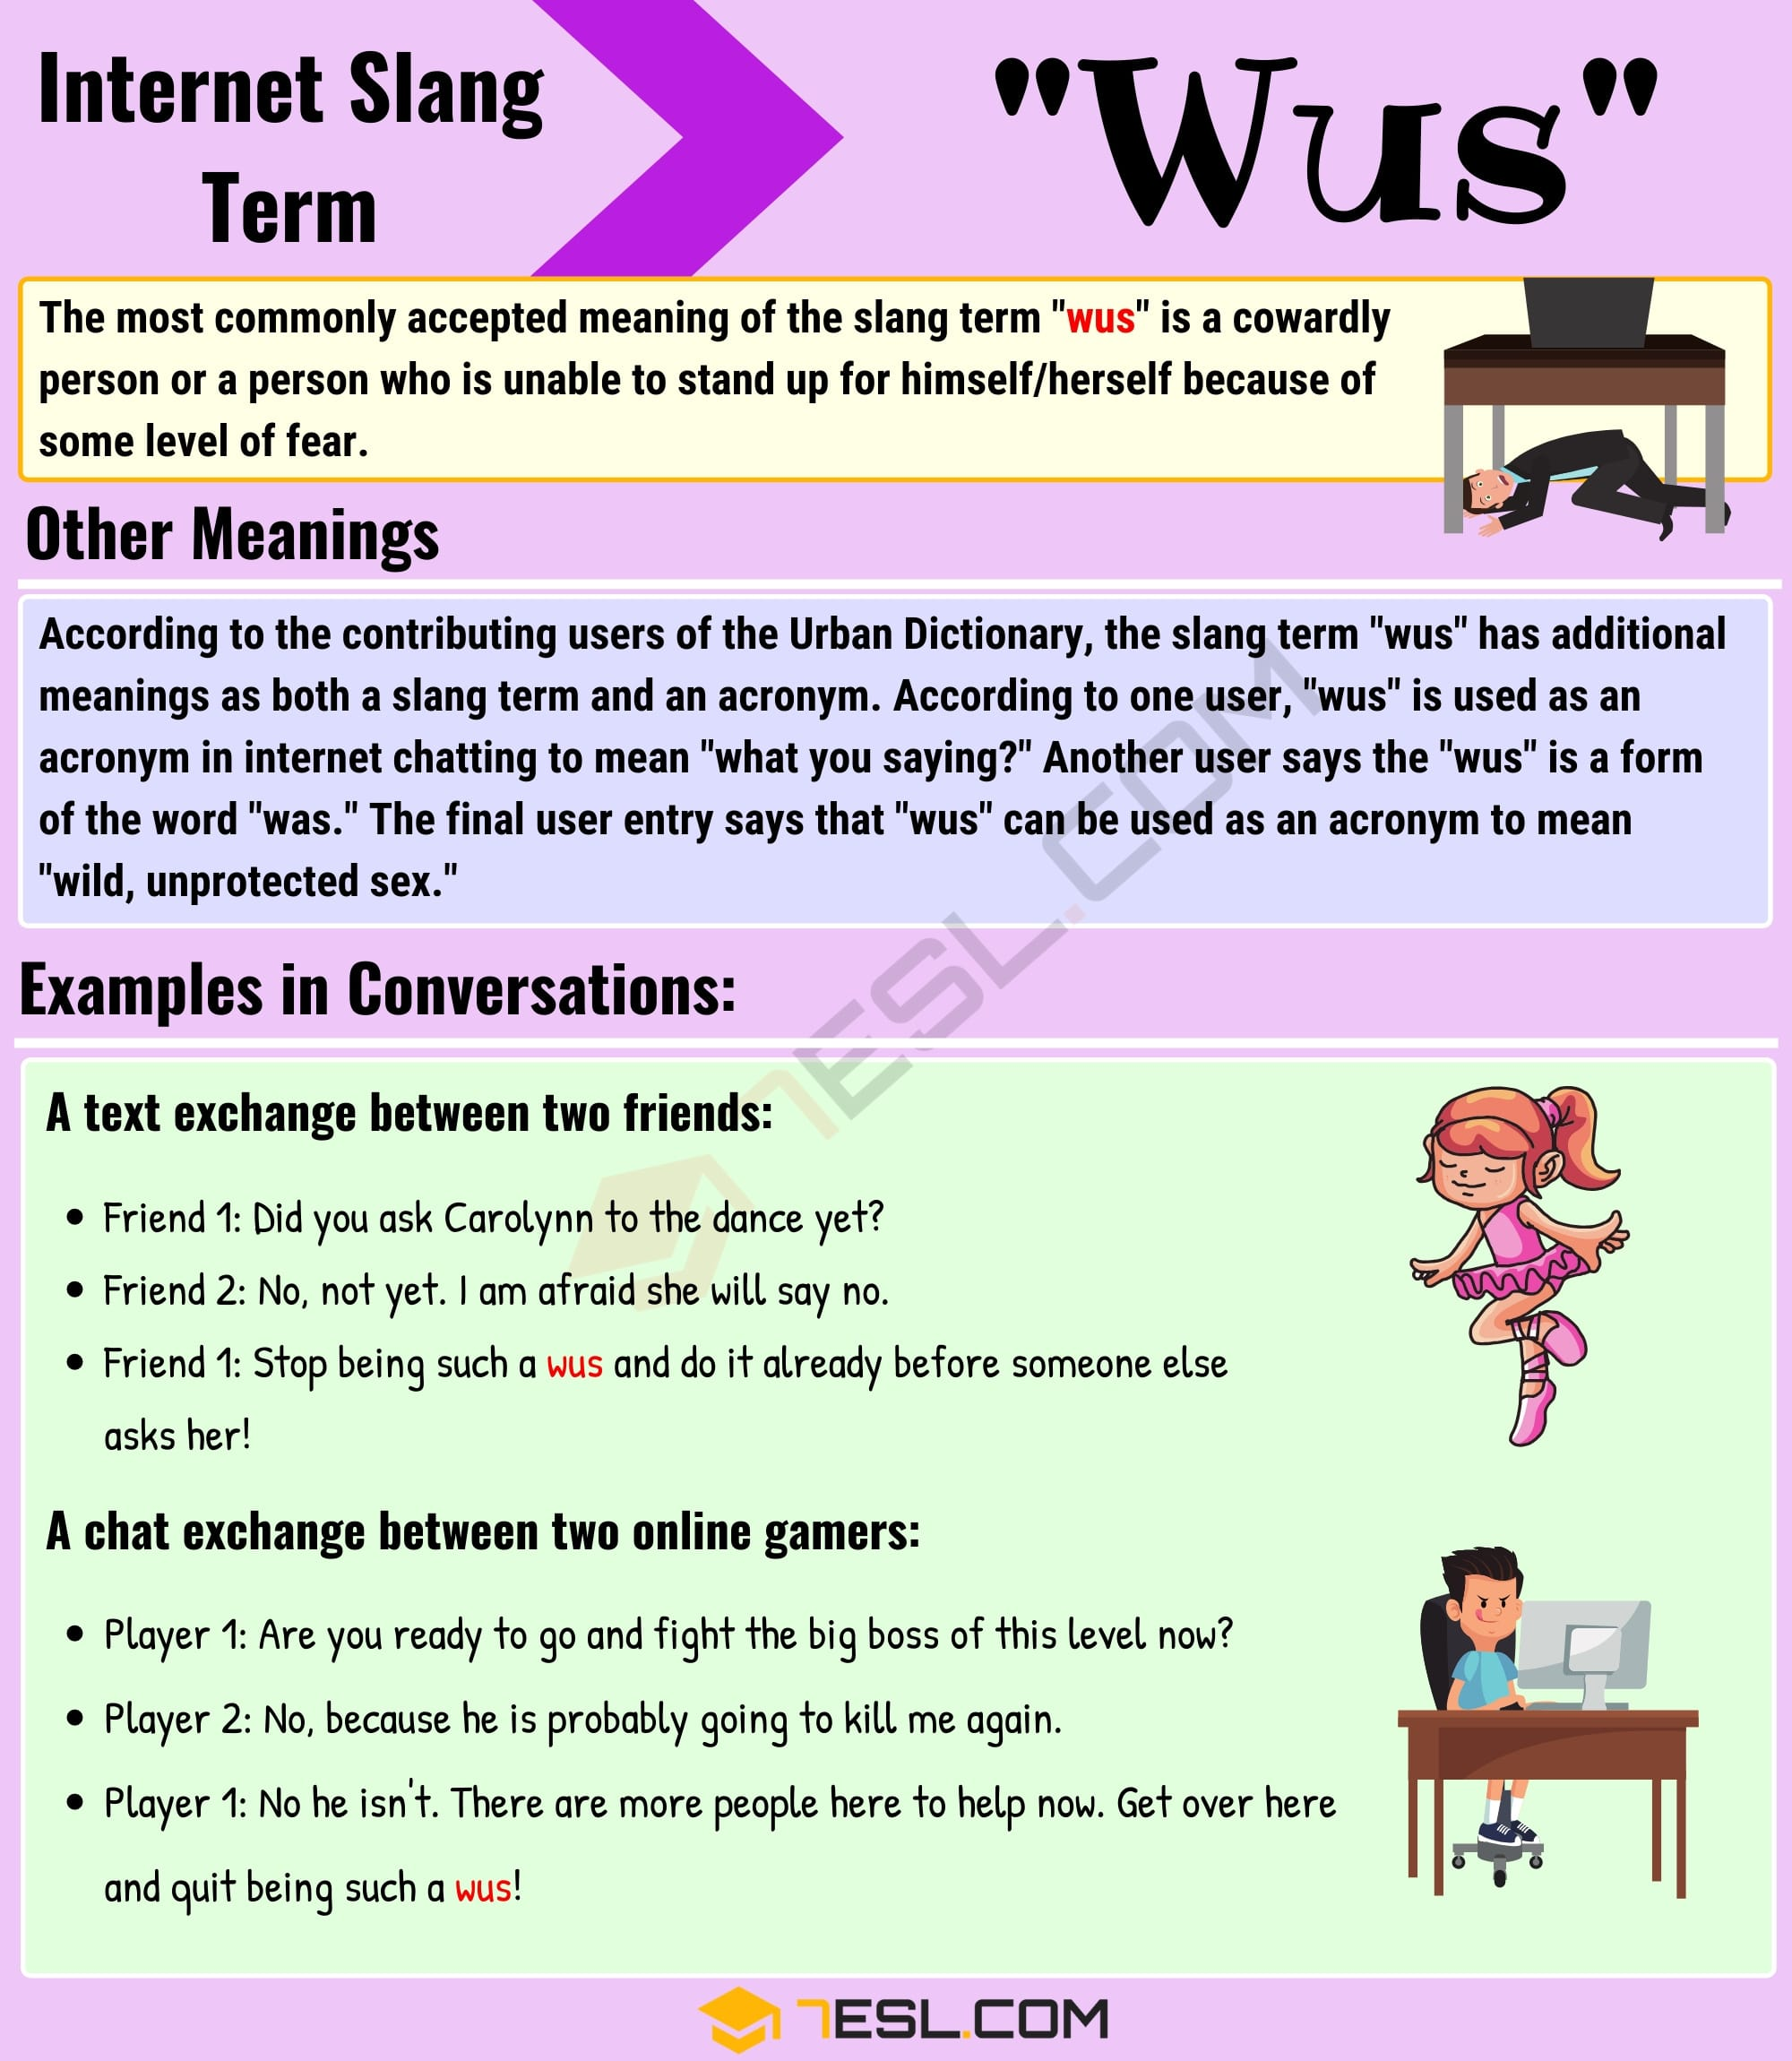 Wus Meaning: How To Use The Internet Slang Word Wus? - 7 E S L